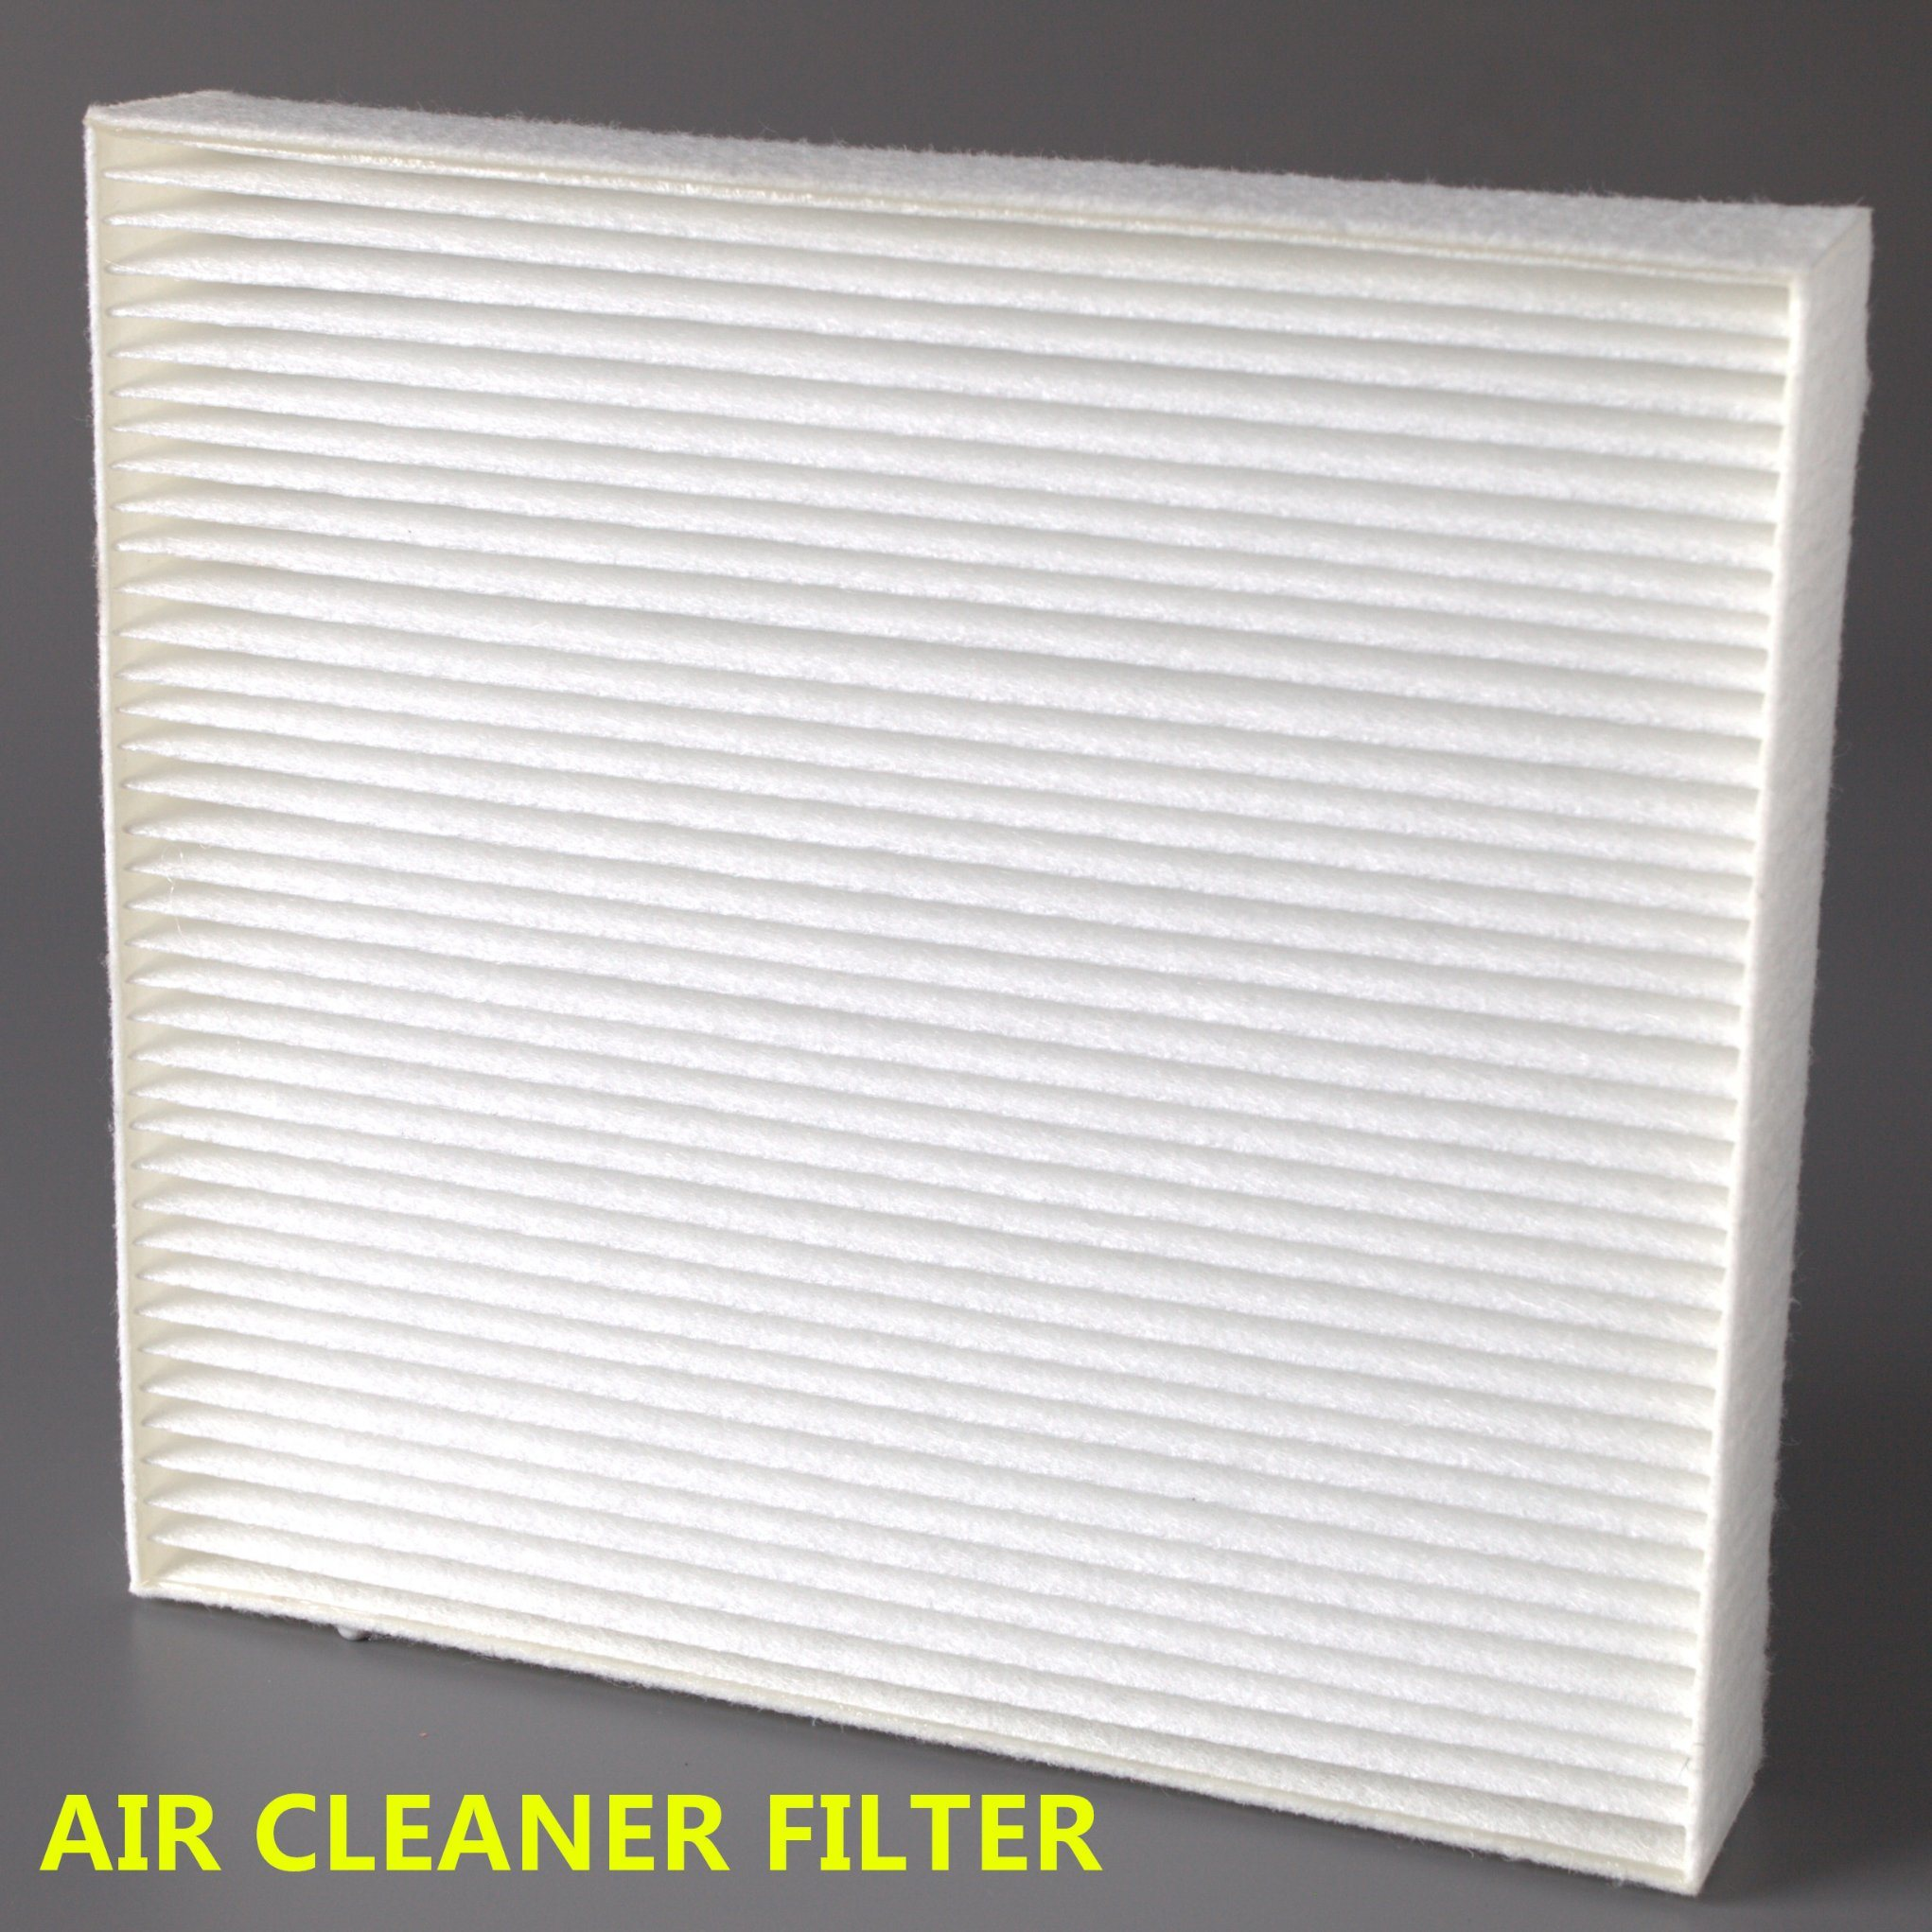 Melt-Blown Composite Filter Media